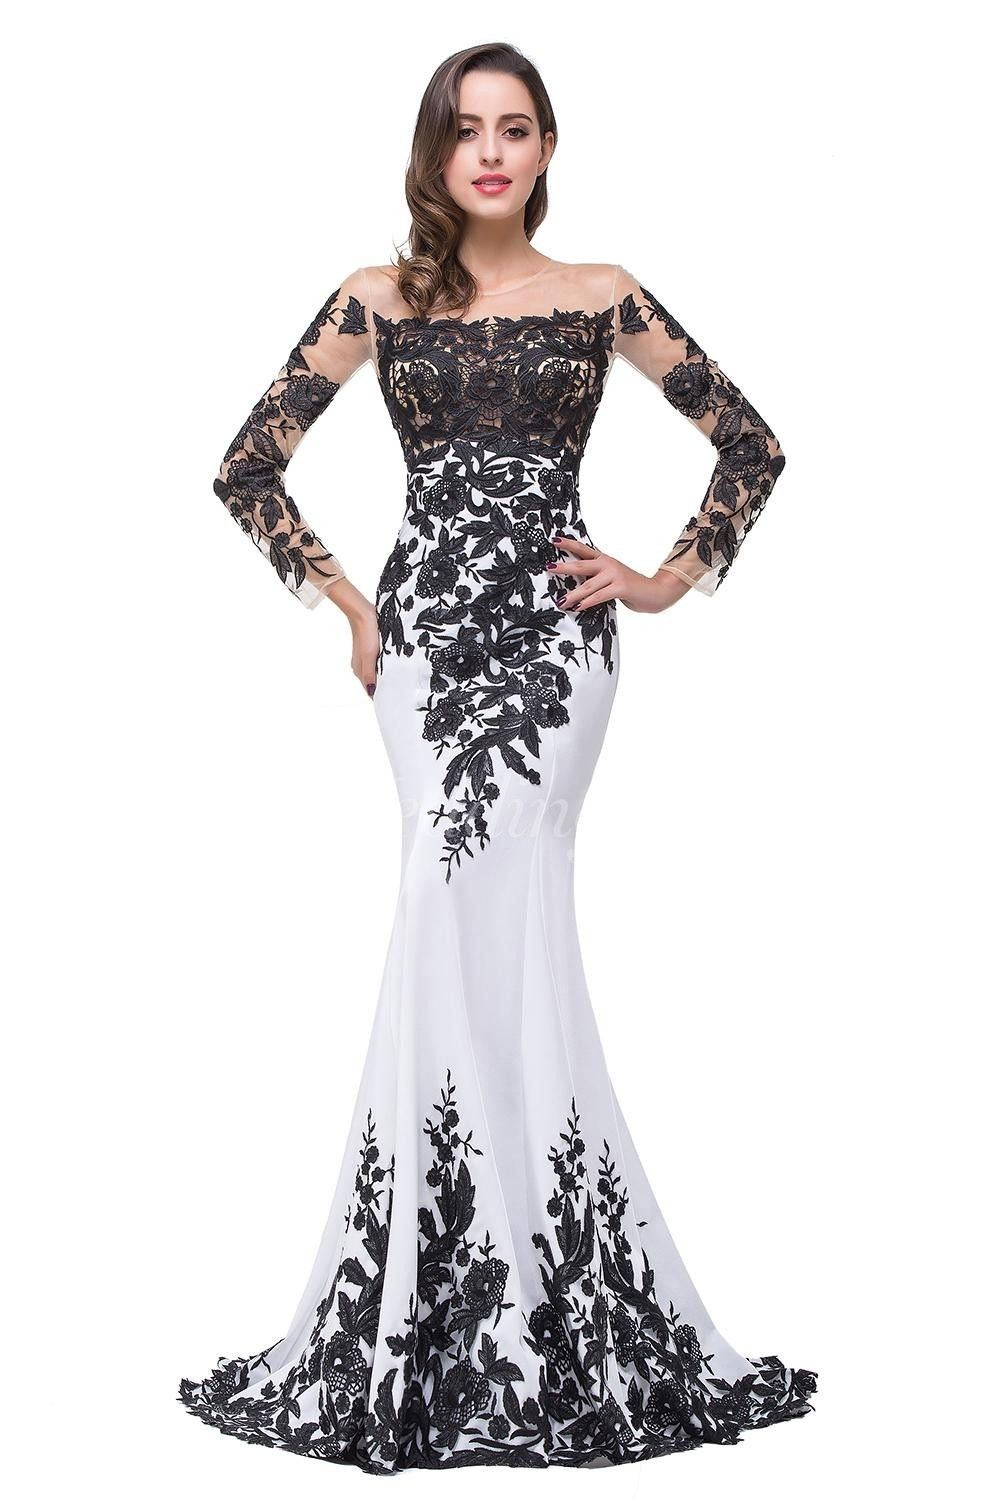 53955652f0df3  114.65-Glamorous Long Sleeve Mermaid 2016 Black and White Evening Dress  with Sleeves. Mother